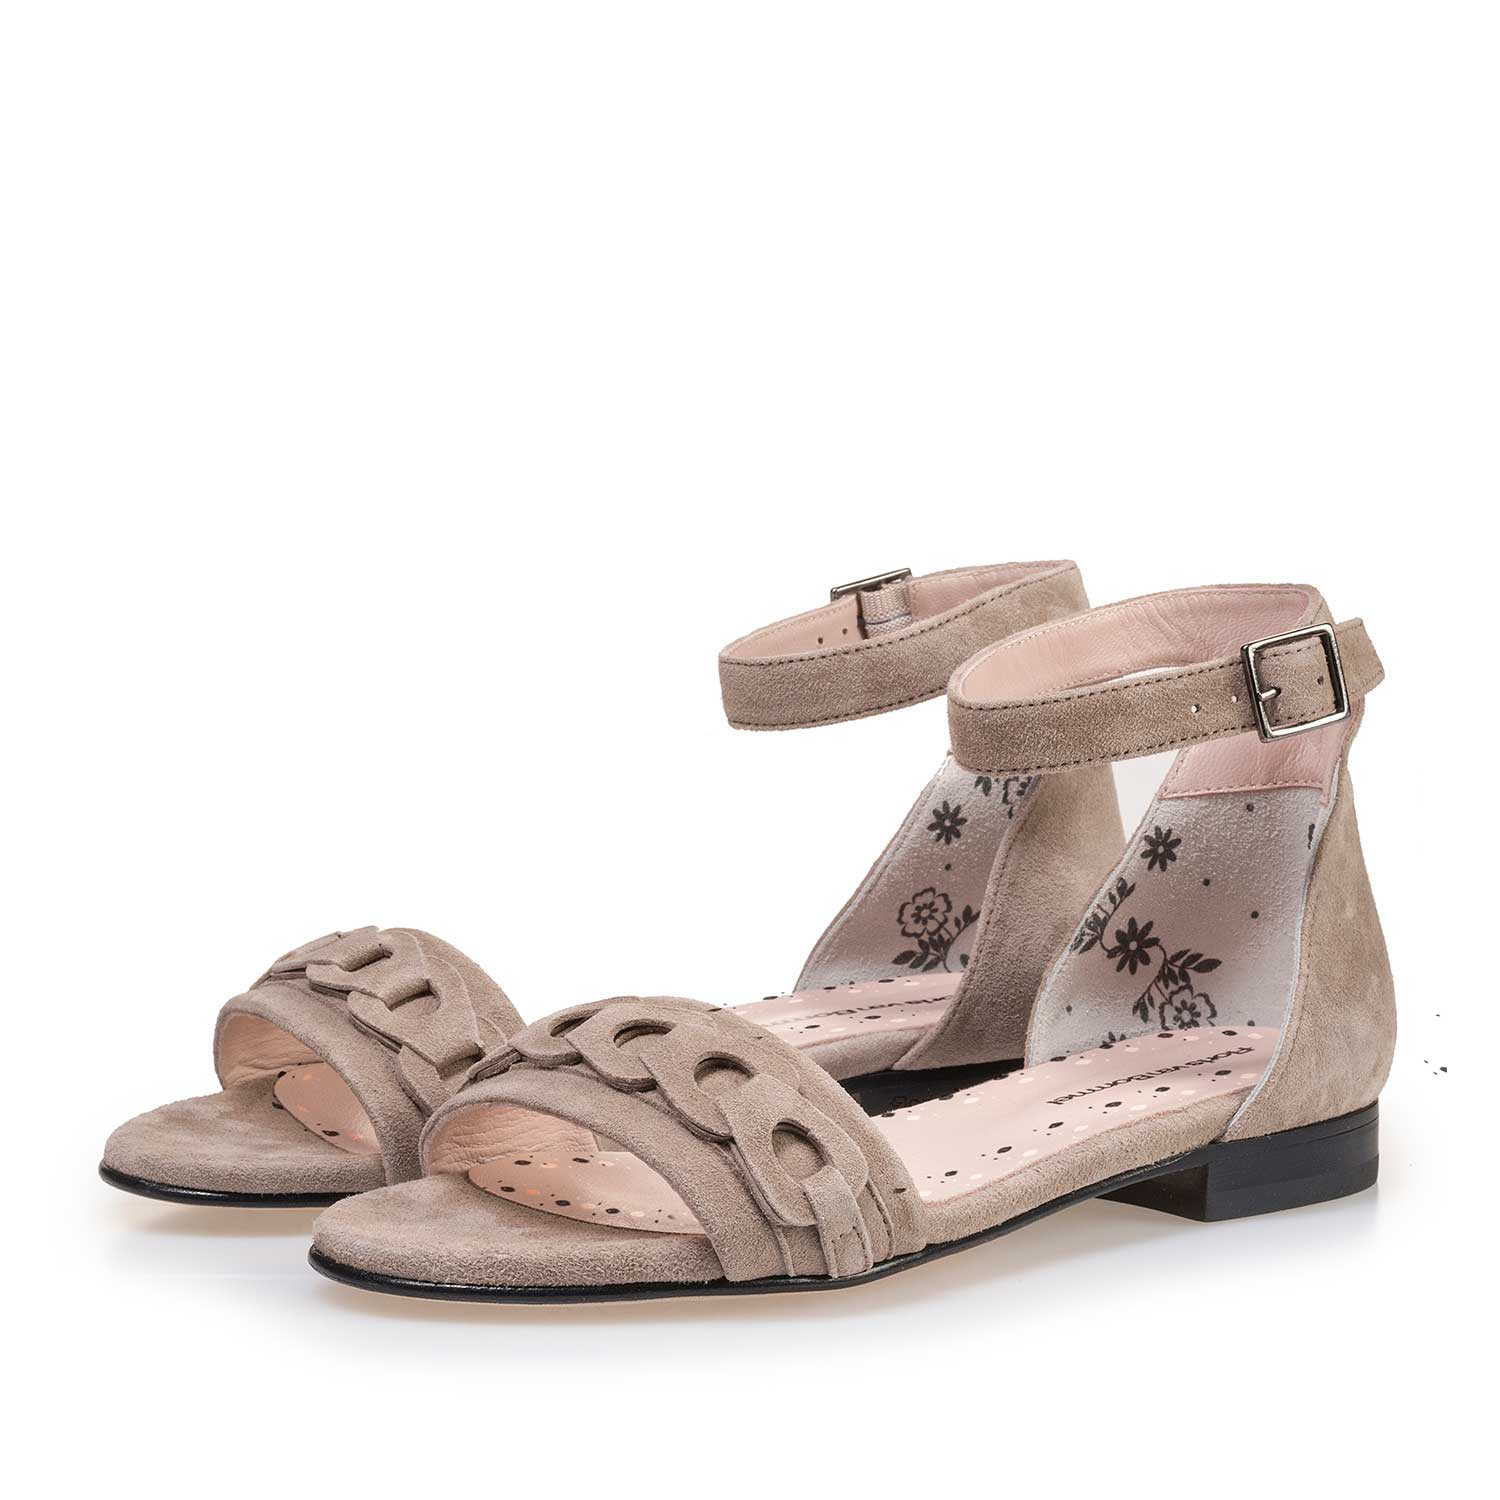 85224/01 - Taupe-coloured calf's suede leather heeled sandal